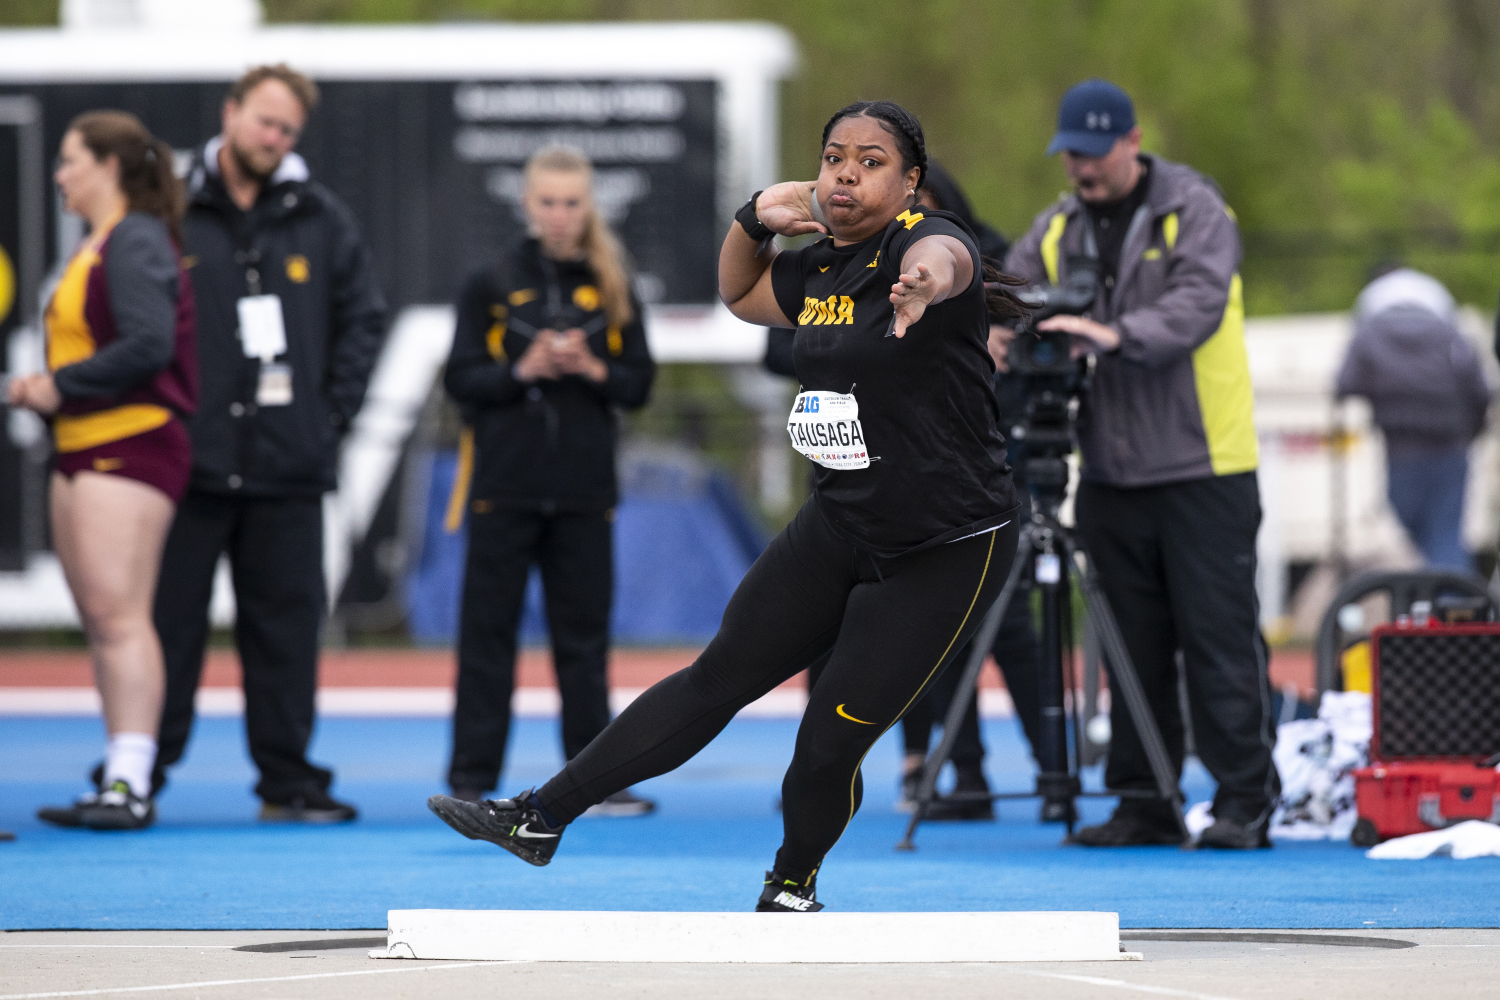 University of Iowa junior Laulauga Tausaga competes in the shot put during the second day of the Big Ten Track and Field Outdoor Championships at Cretzmeyer Track on Saturday, May 11, 2019. Tausaga placed third in the women shot put finals.